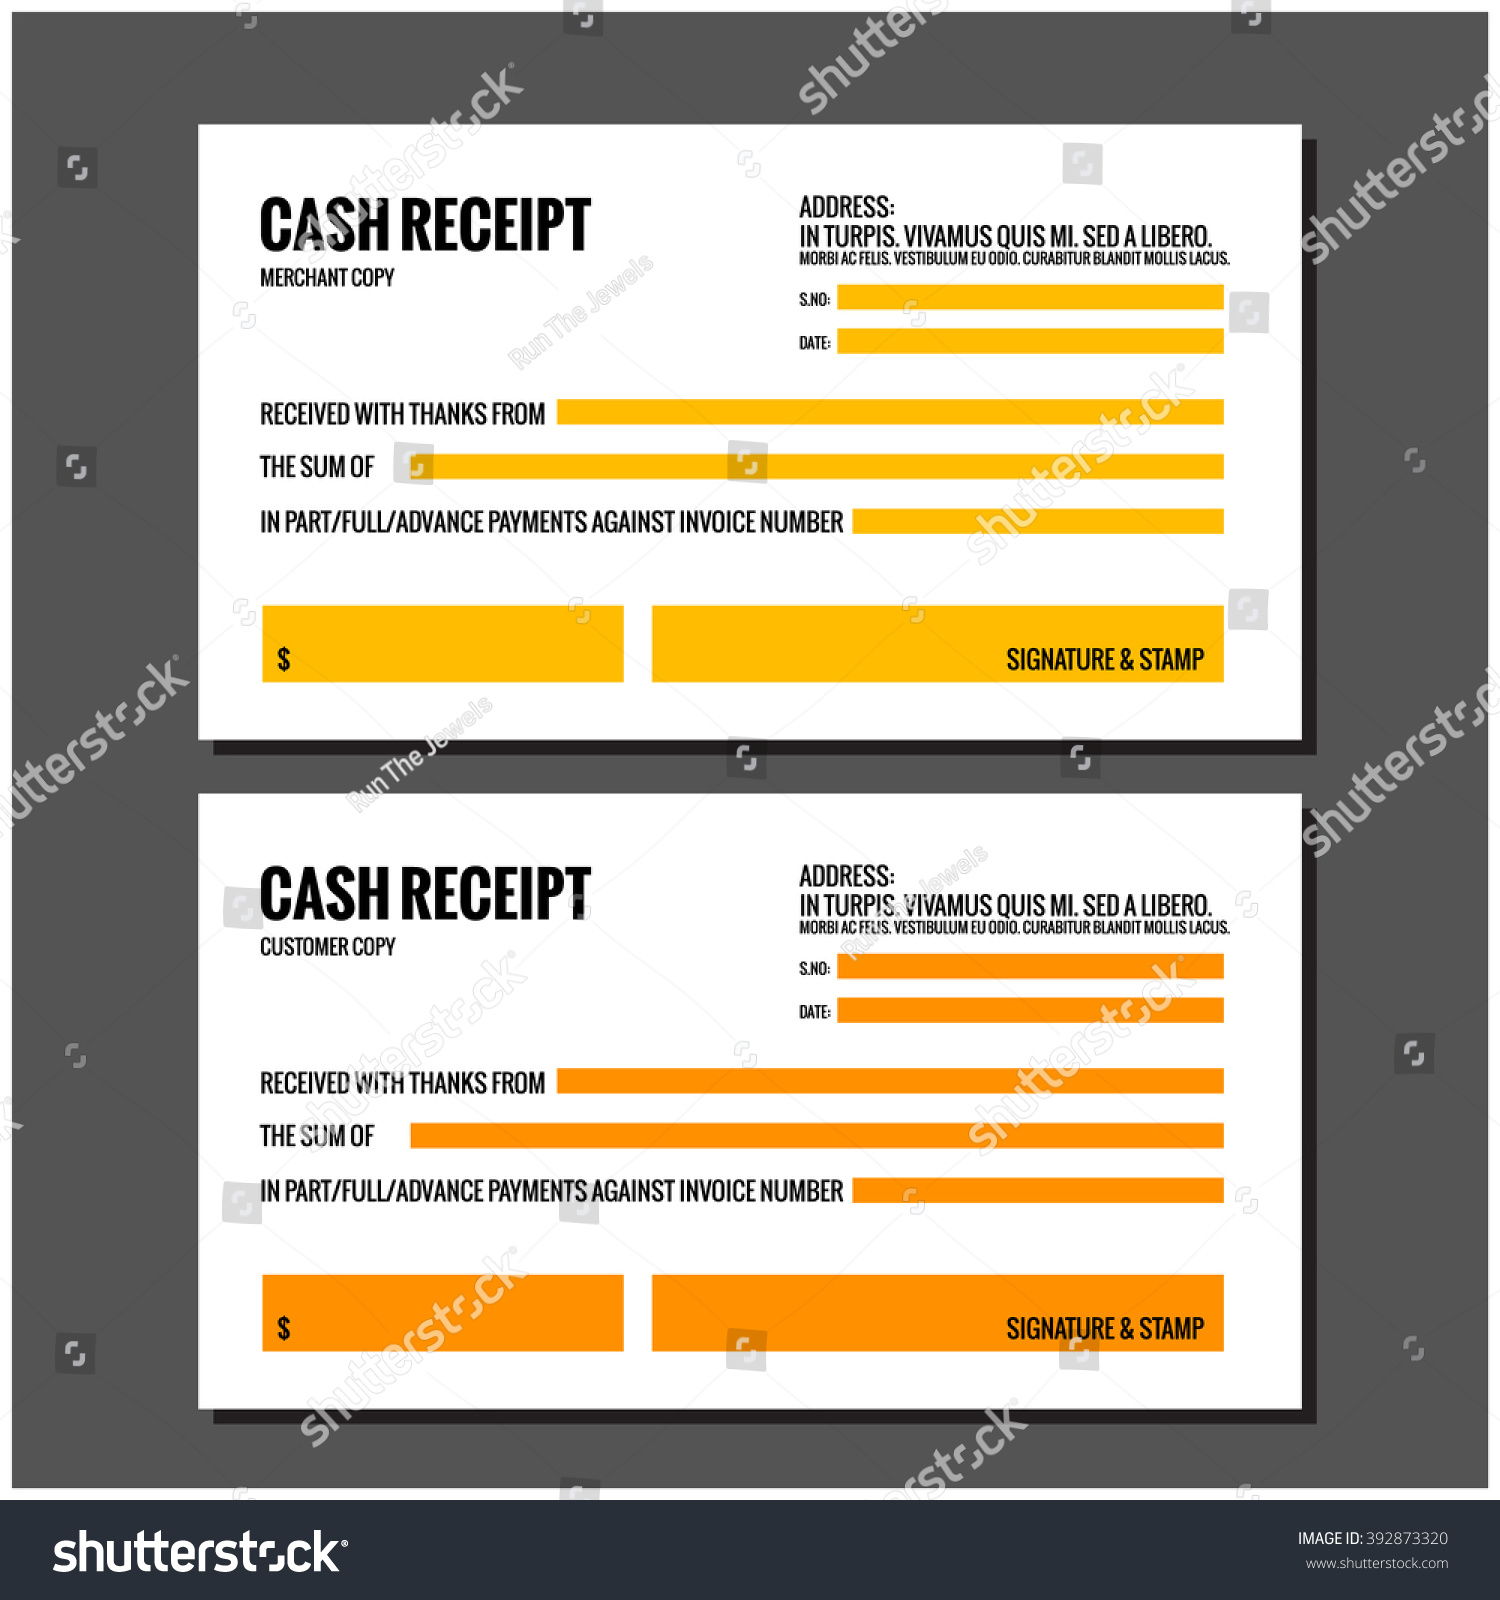 cash receipt design template stock vector royalty free 392873320